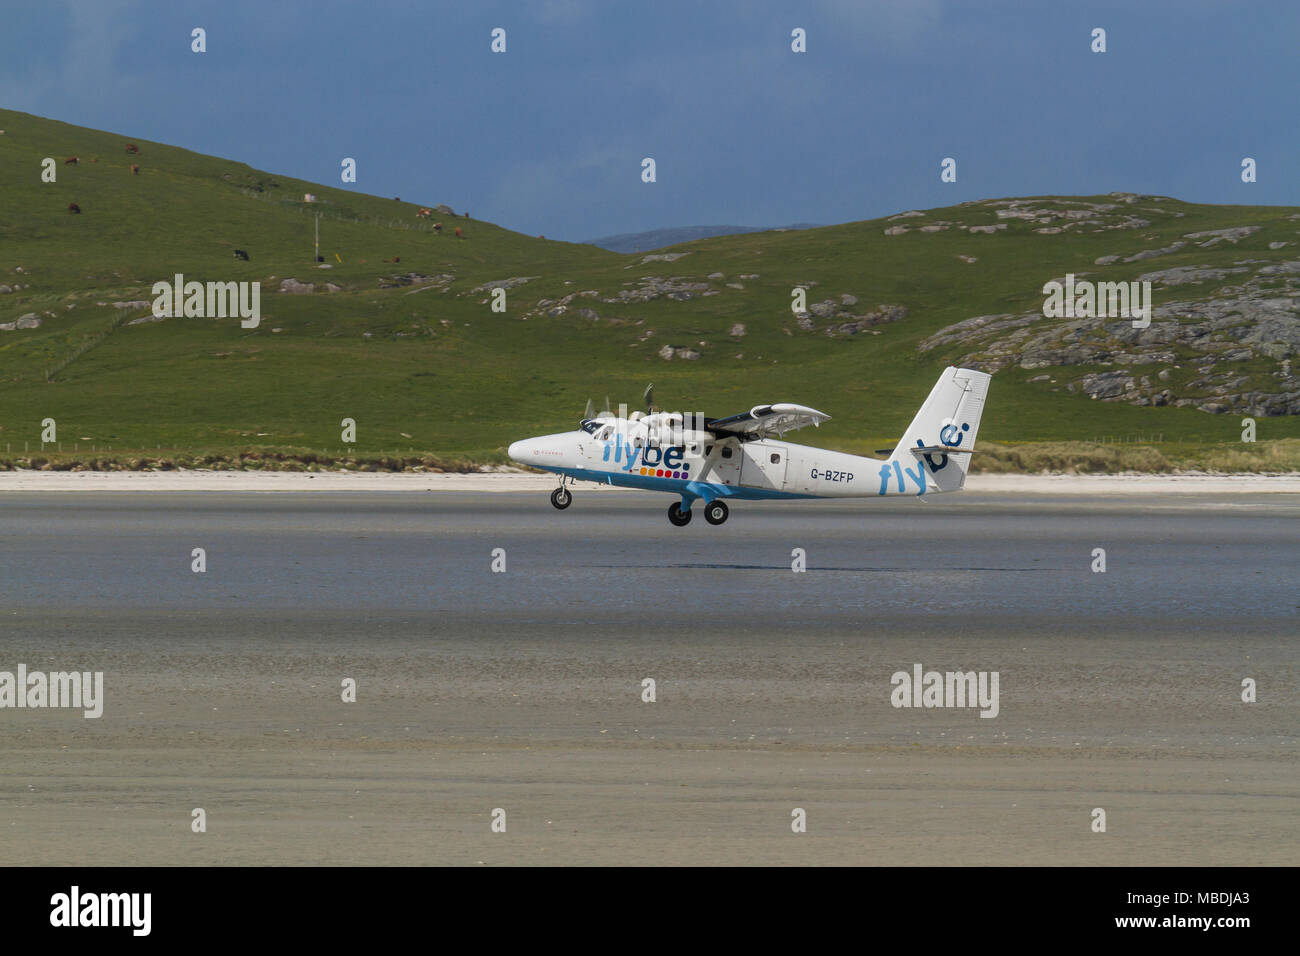 DHC Twin Otter passenger aeroplane taking off from the beach runway at Barra Airport, Isle of Barra, Outer Hebrides, Scotland - Stock Image